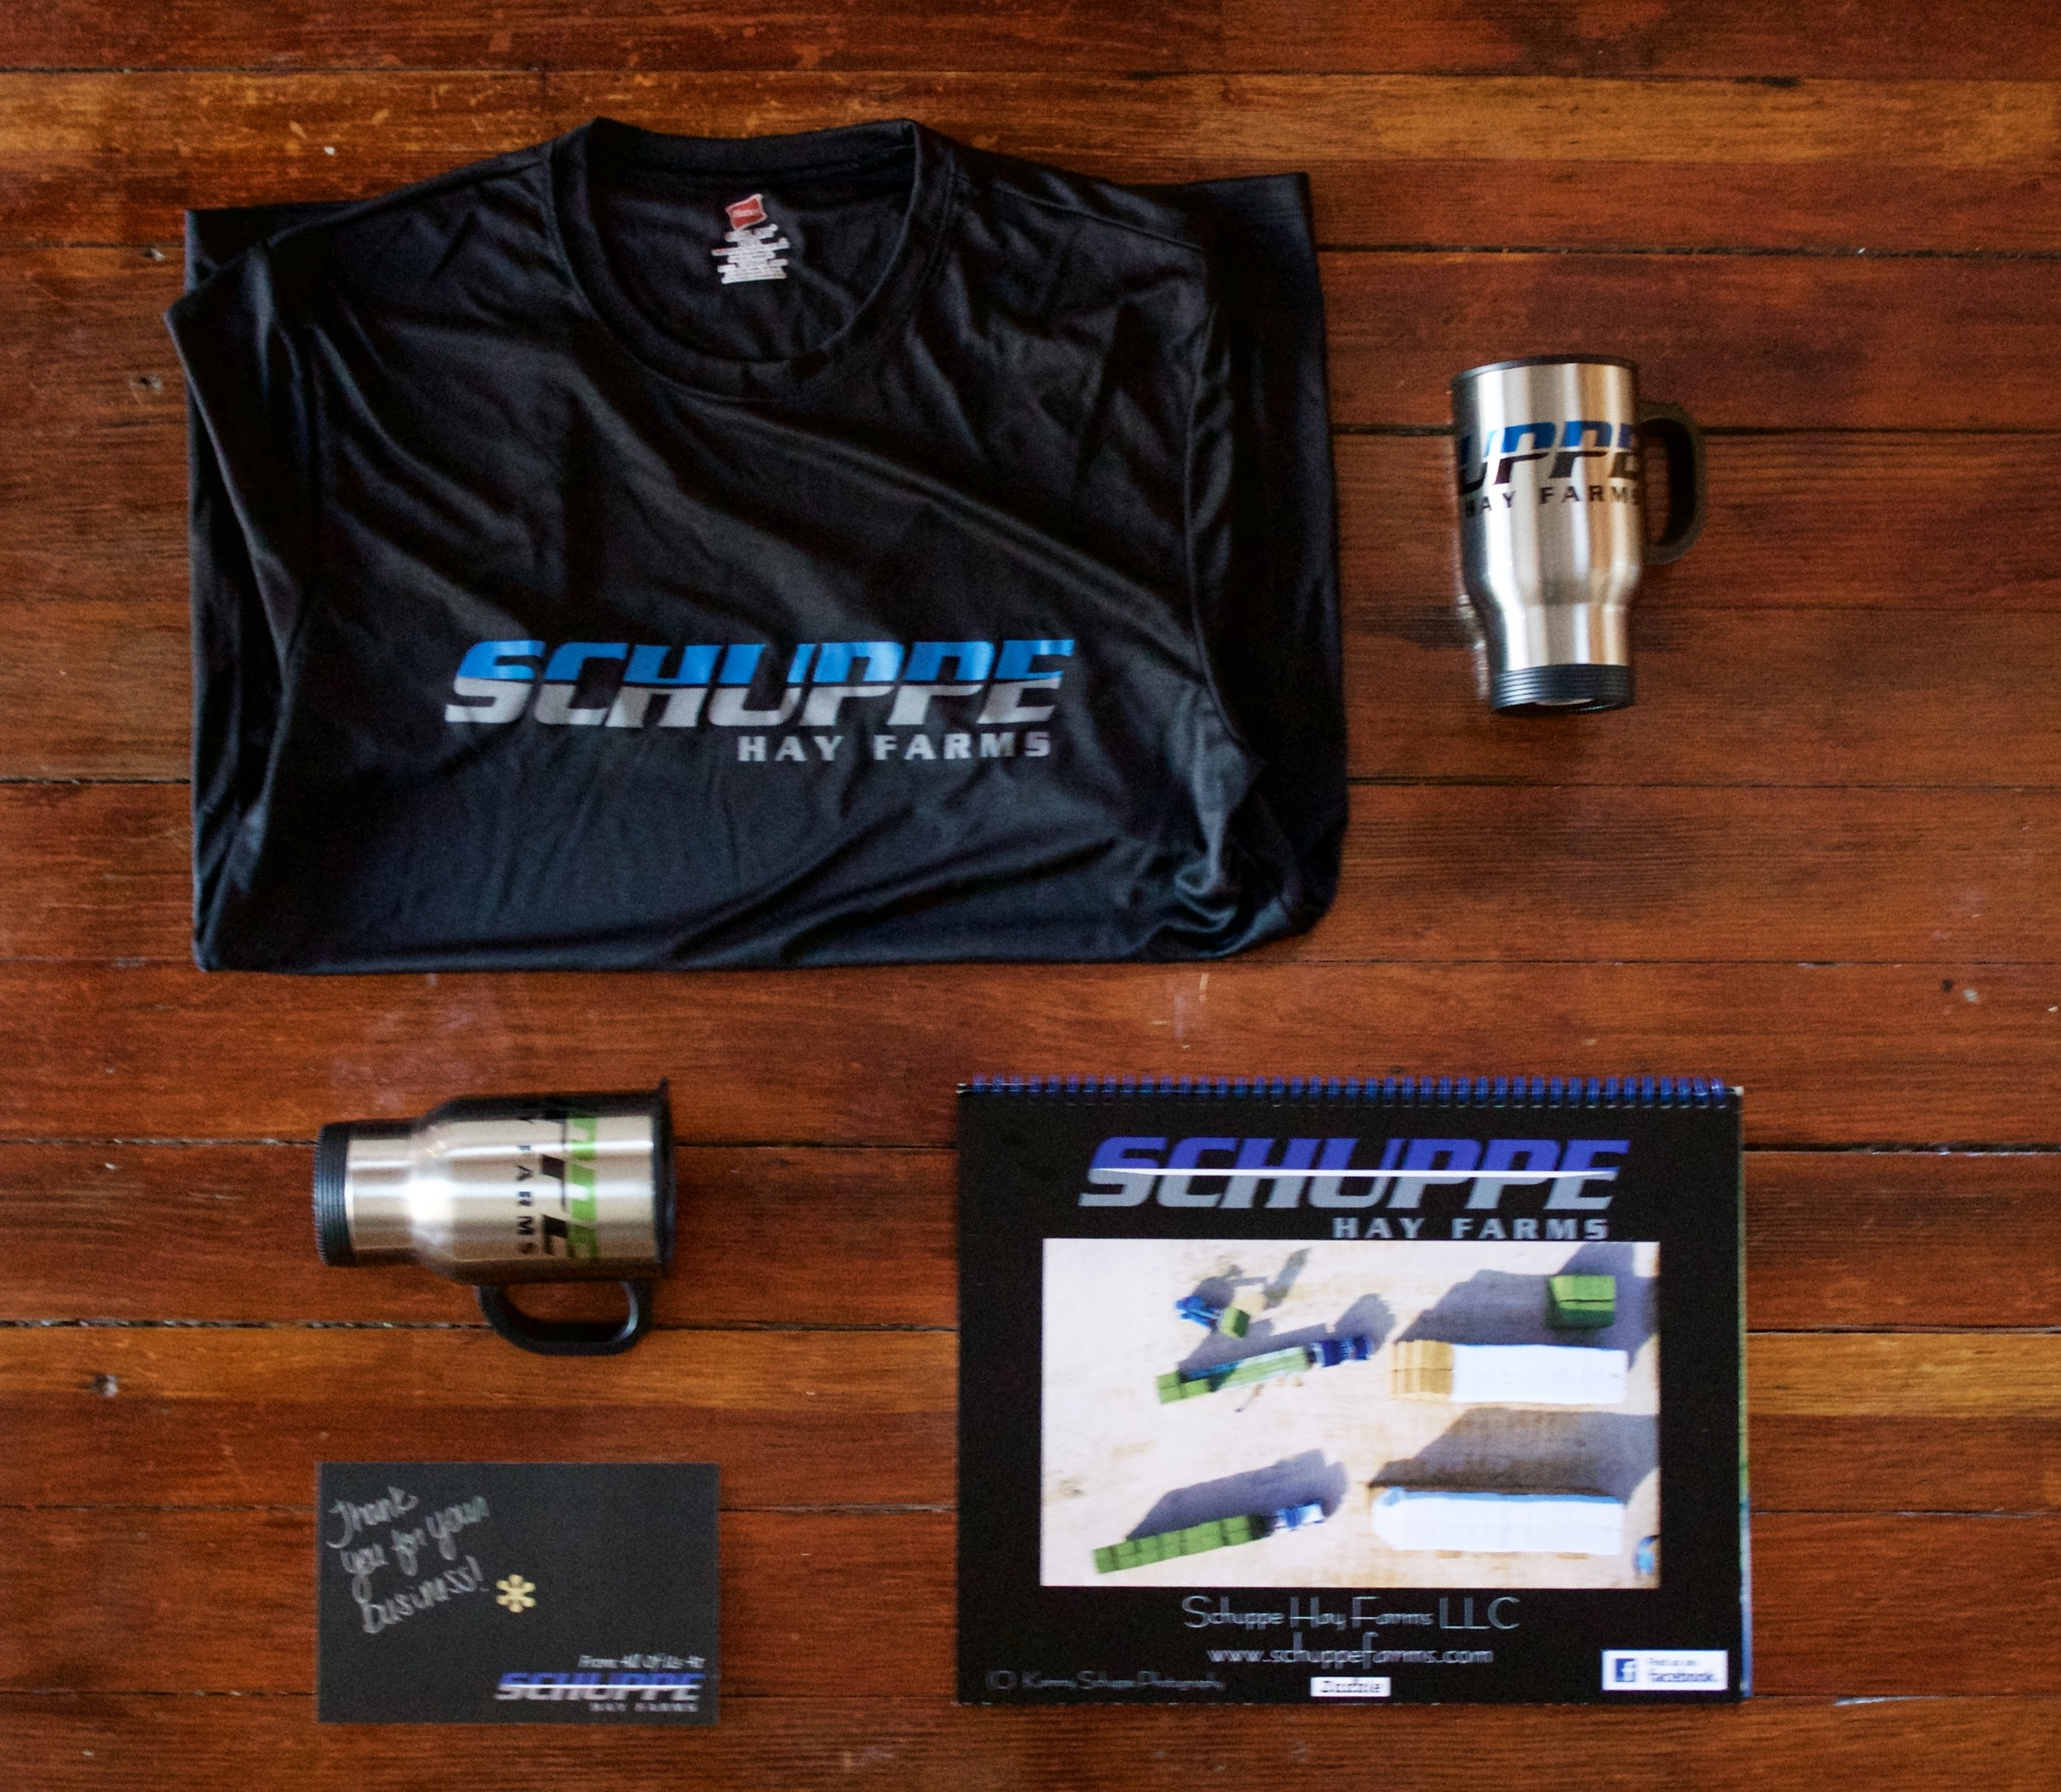 Schuppe Promotional Materials